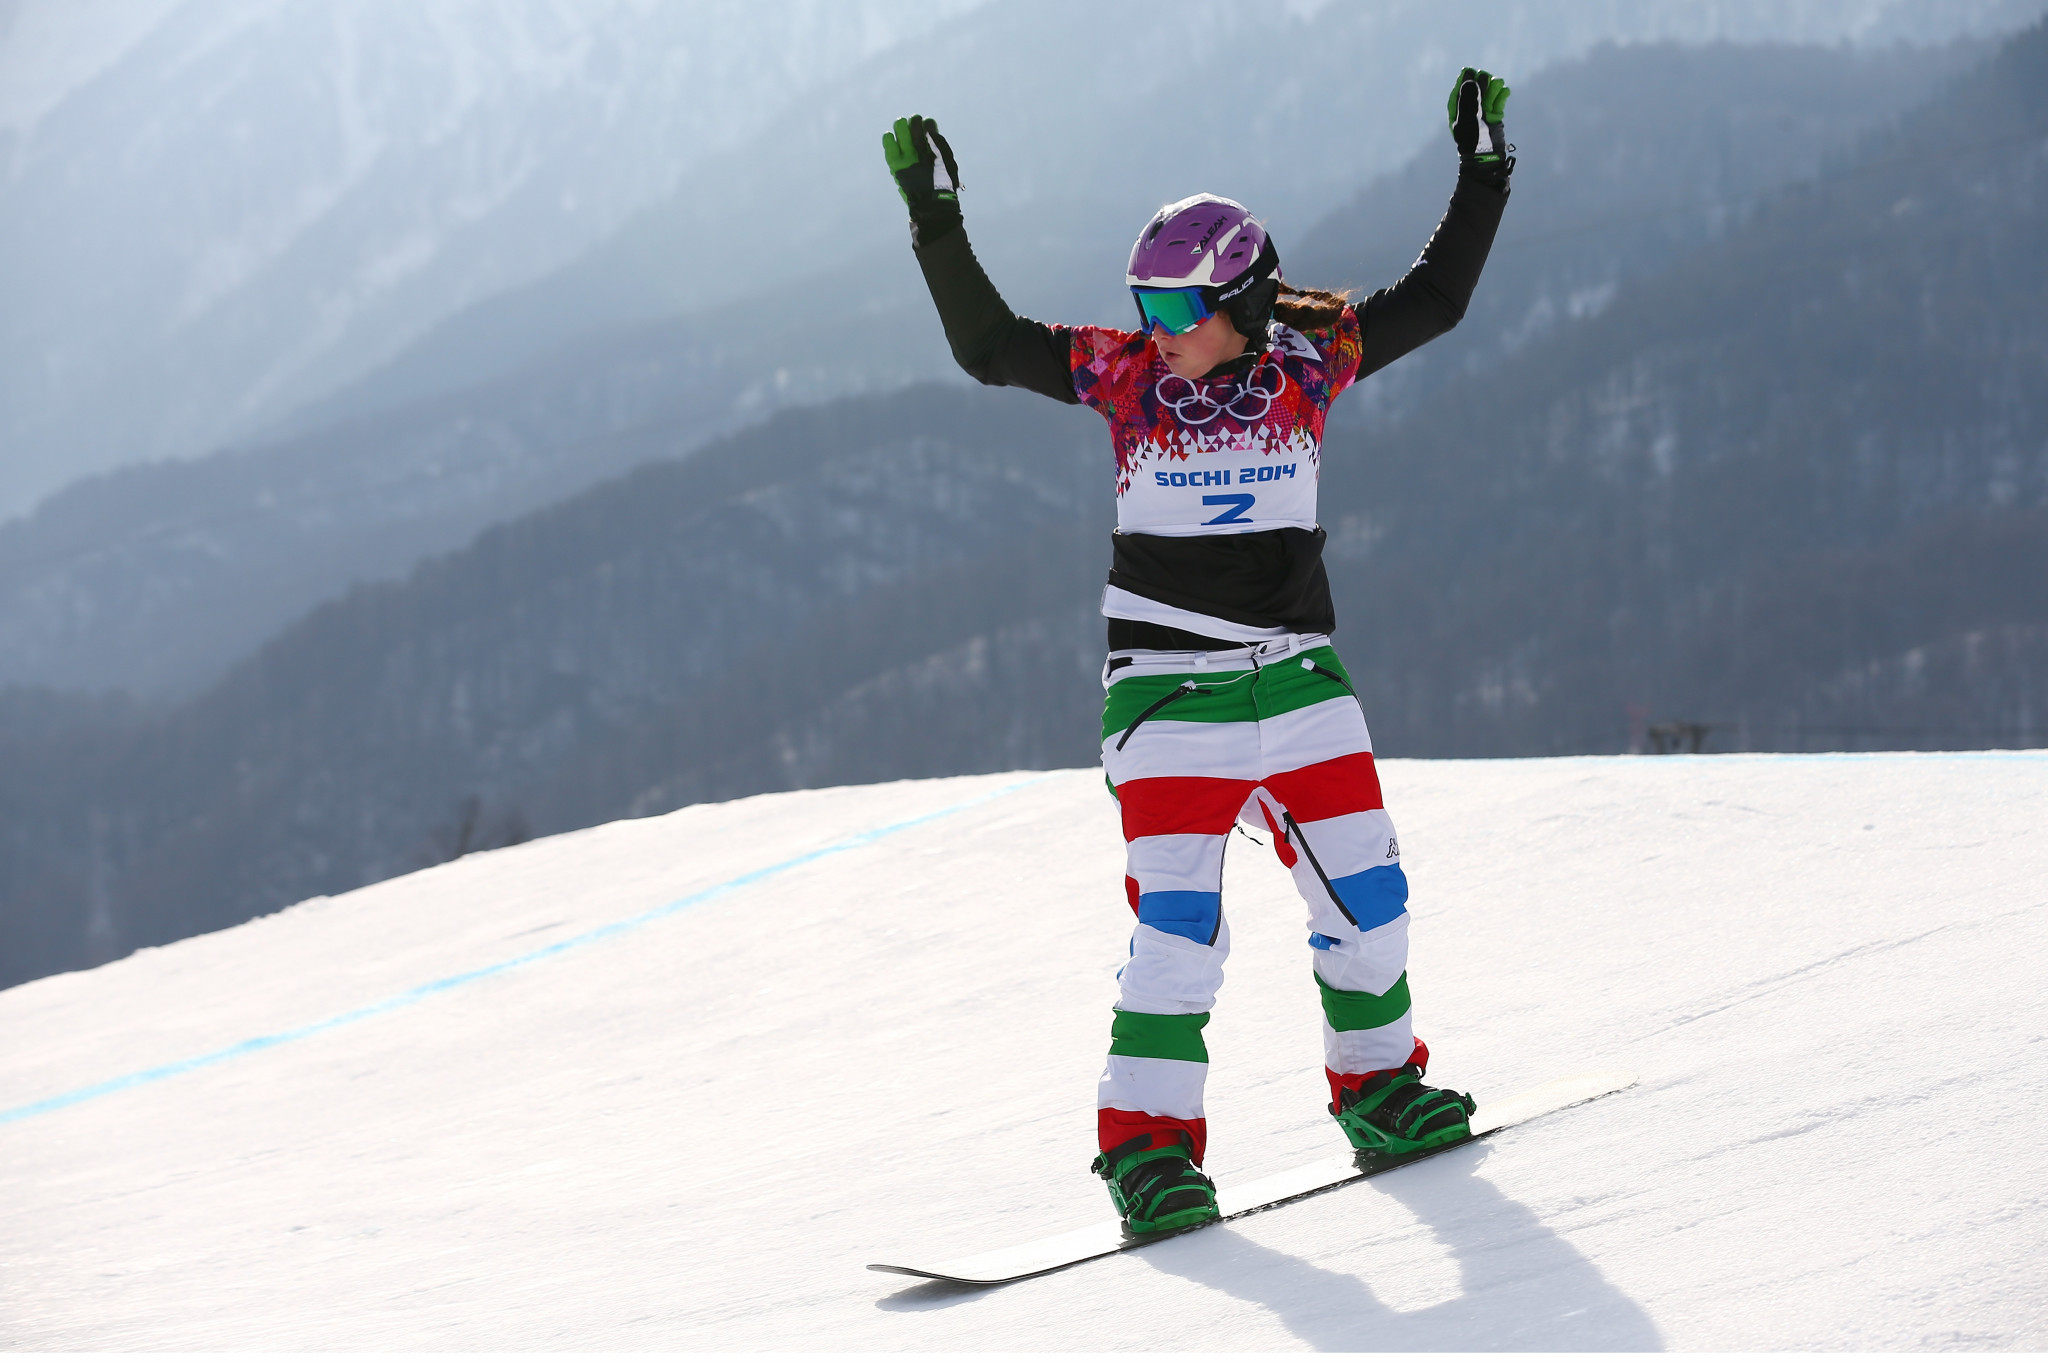 Raffaella Brutto looked dominant in women's qualifying ©Getty Images